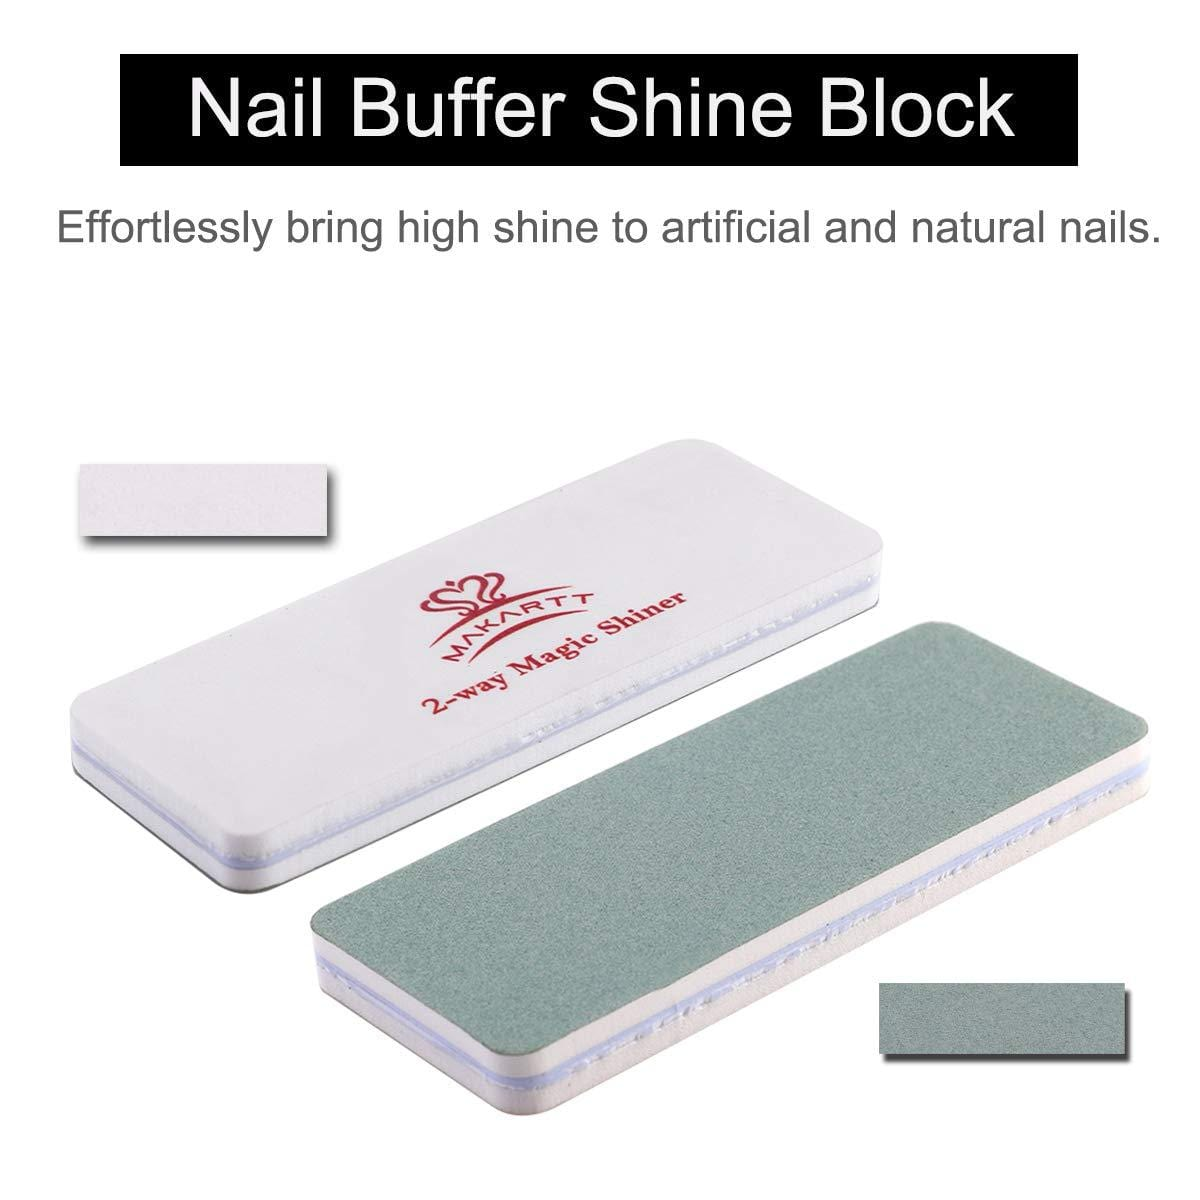 4 Way Nail File Block and Buffer Set - Makartt